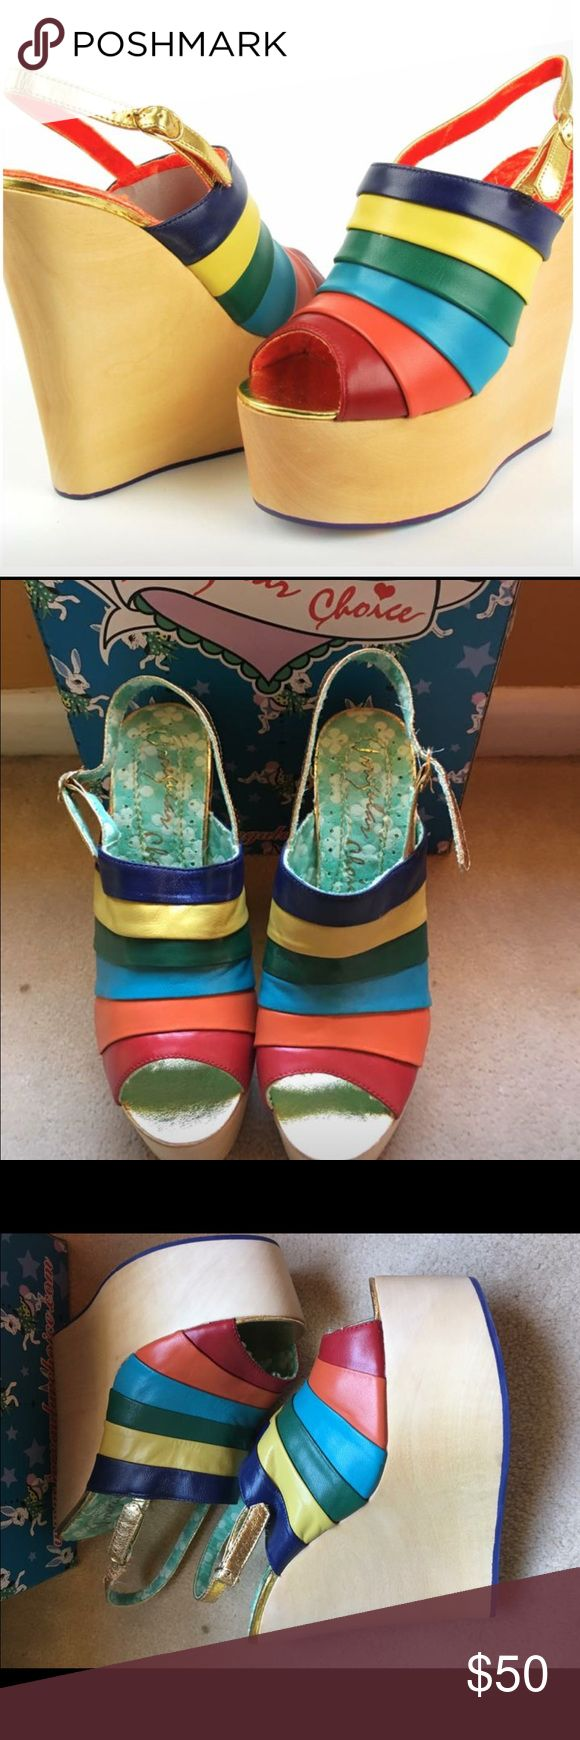 """{Anthro} Irregular Choice Chica Chola Slingback Irregular Choice Chica Chola Slingback Size 6.5, 8.5, 9, 10 available   Leather Synthetic sole Heel 4.5"""" Leather upper Retail $298  Brand new with shoebox Anthropologie Shoes Platforms"""